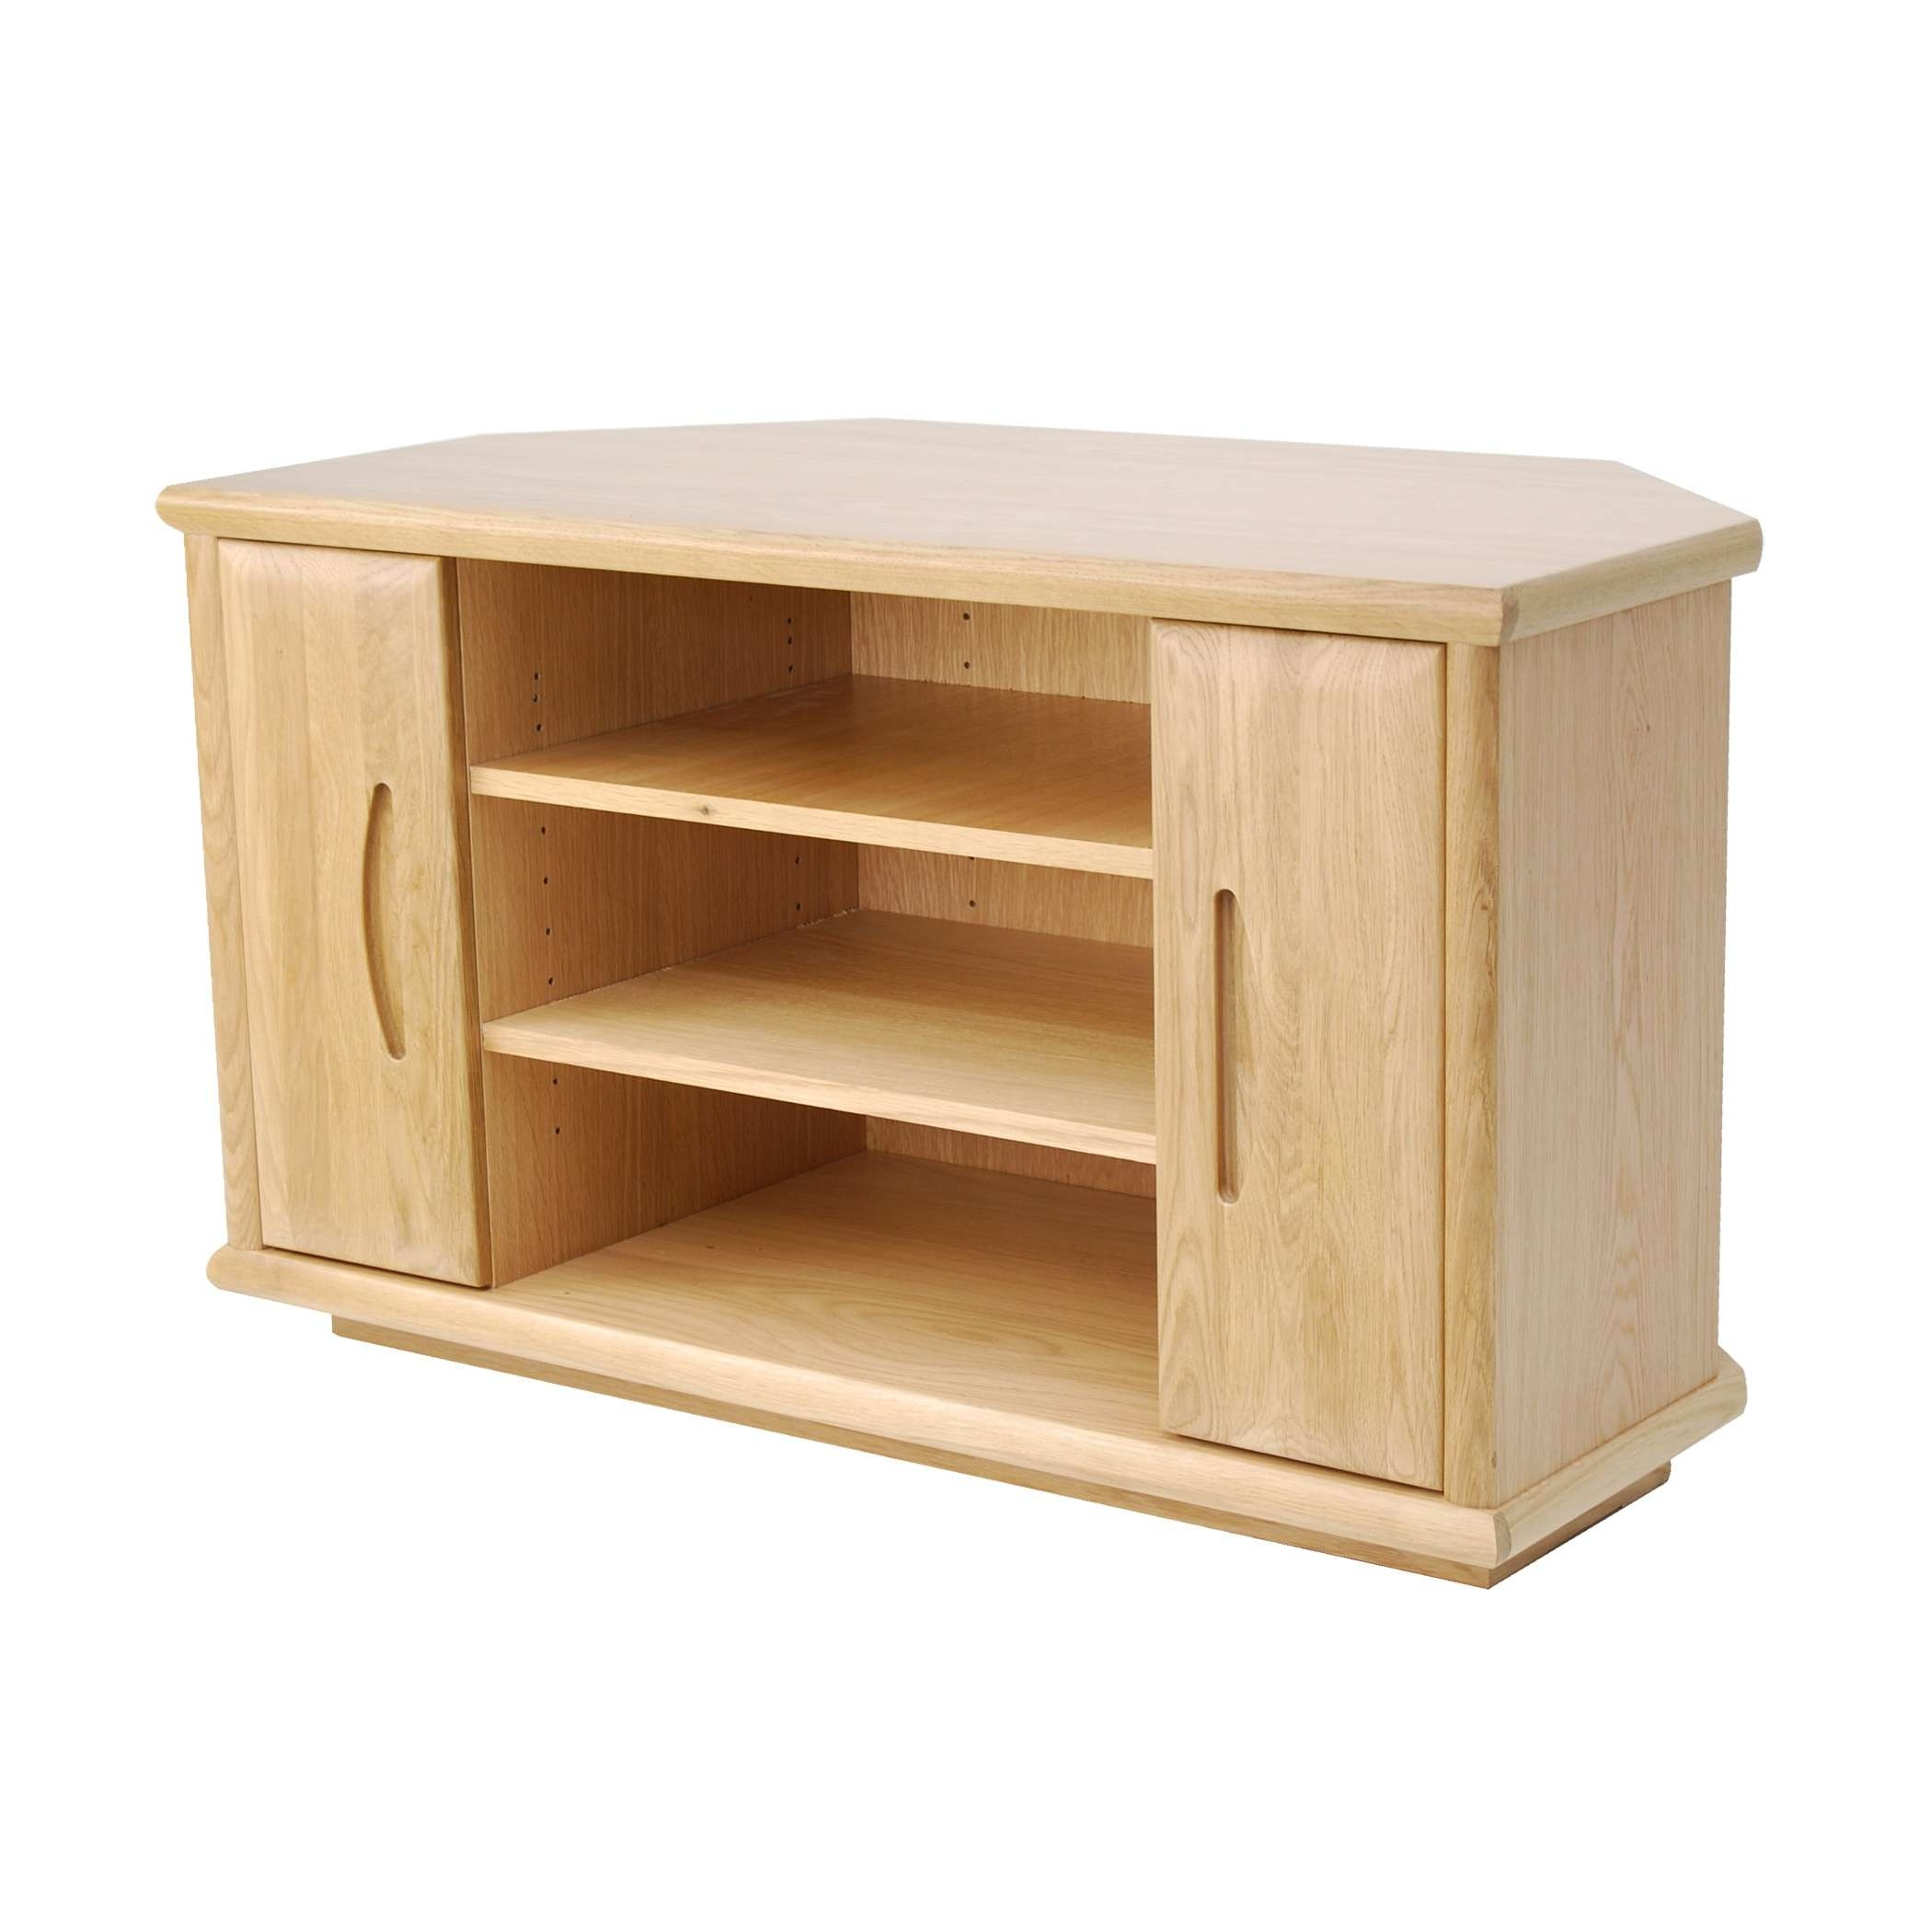 Oak Corner Tv Stand | Gola Furniture Uk Pertaining To Corner Oak Tv Stands (View 8 of 15)